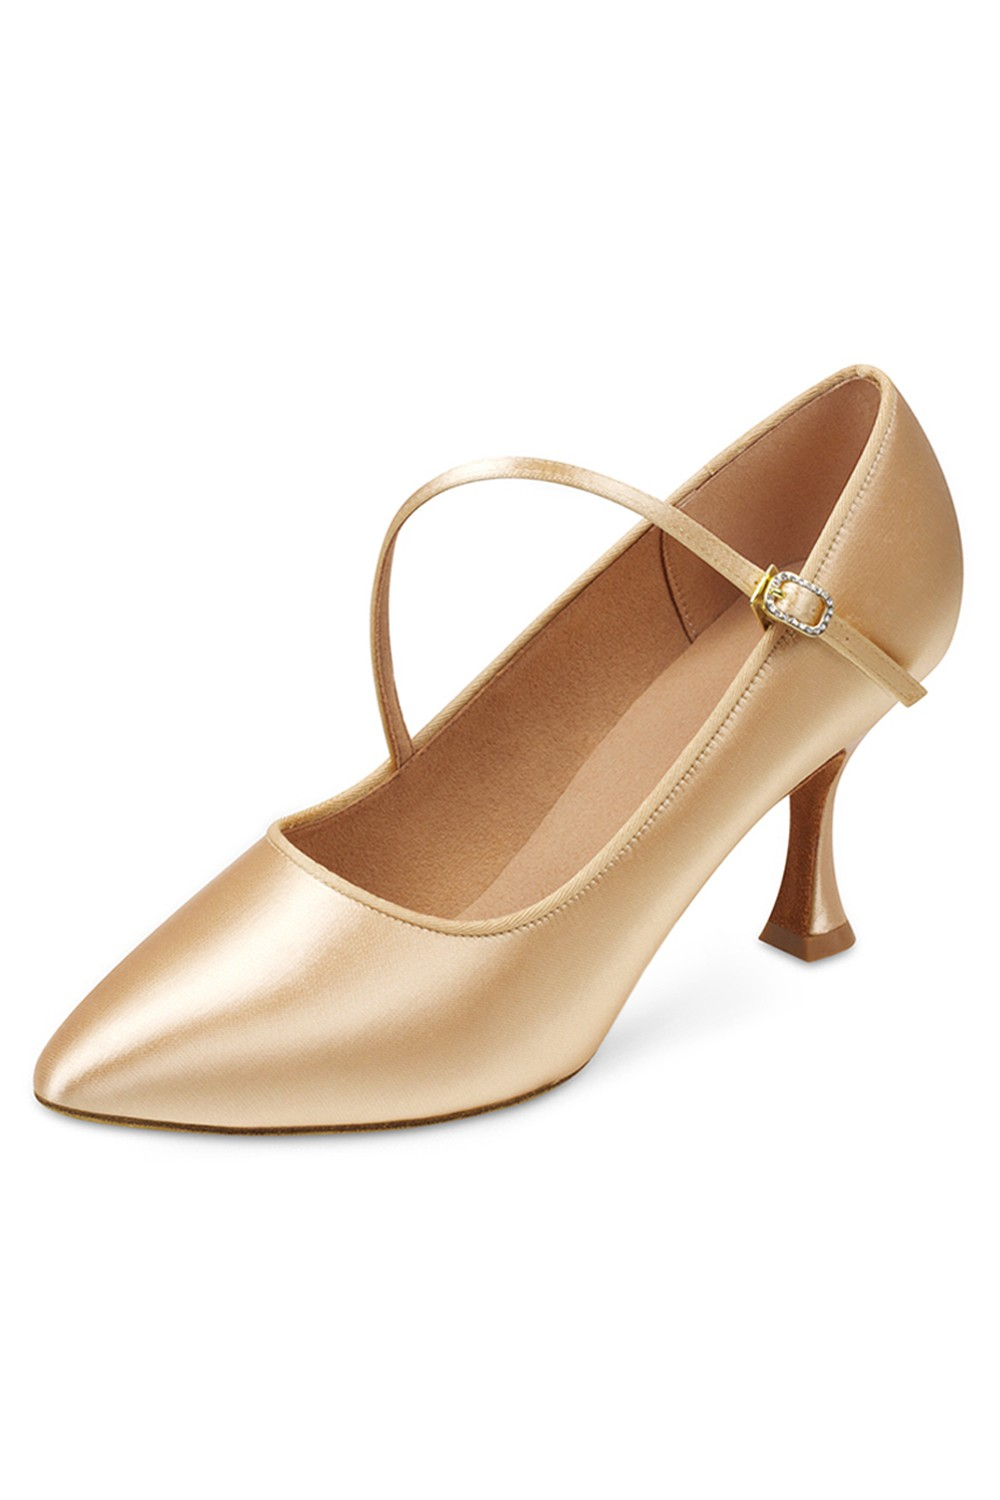 Charisse Women's Ballroom & Latin Shoes